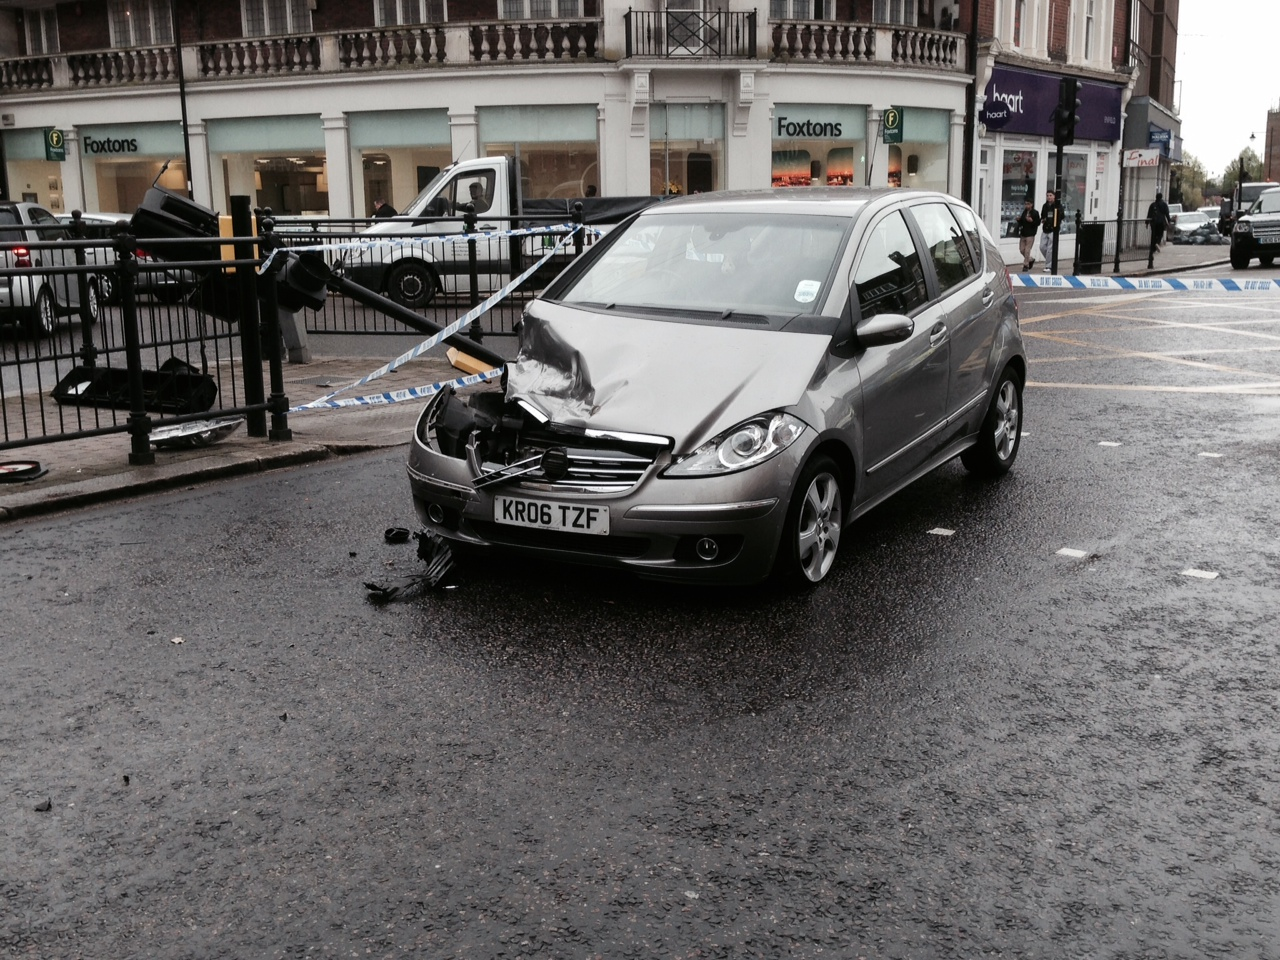 The mercedes which collided with a van which in turn caused a traffic light to fall on a woman